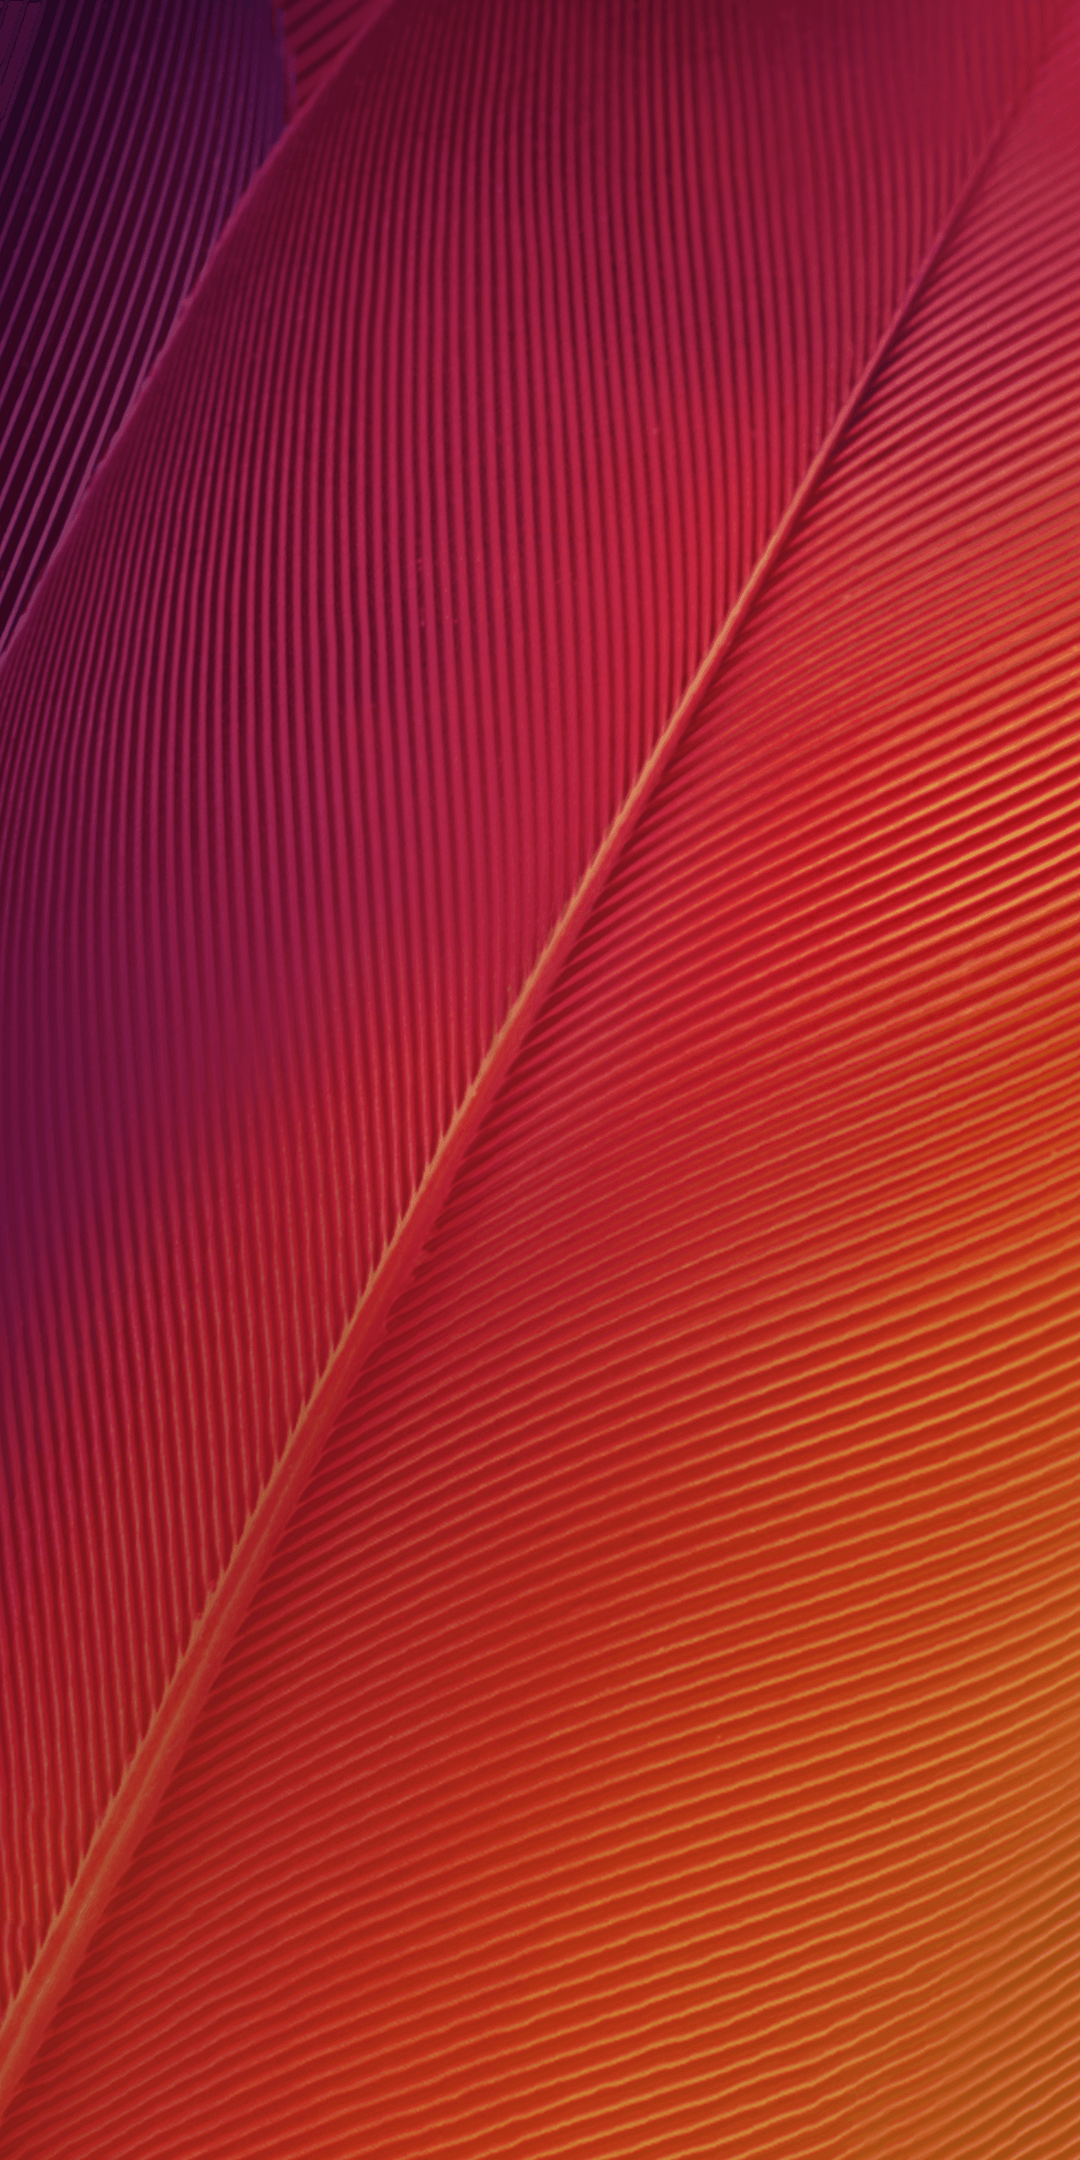 Lenovo S5 Stock Wallpapers | Download 18